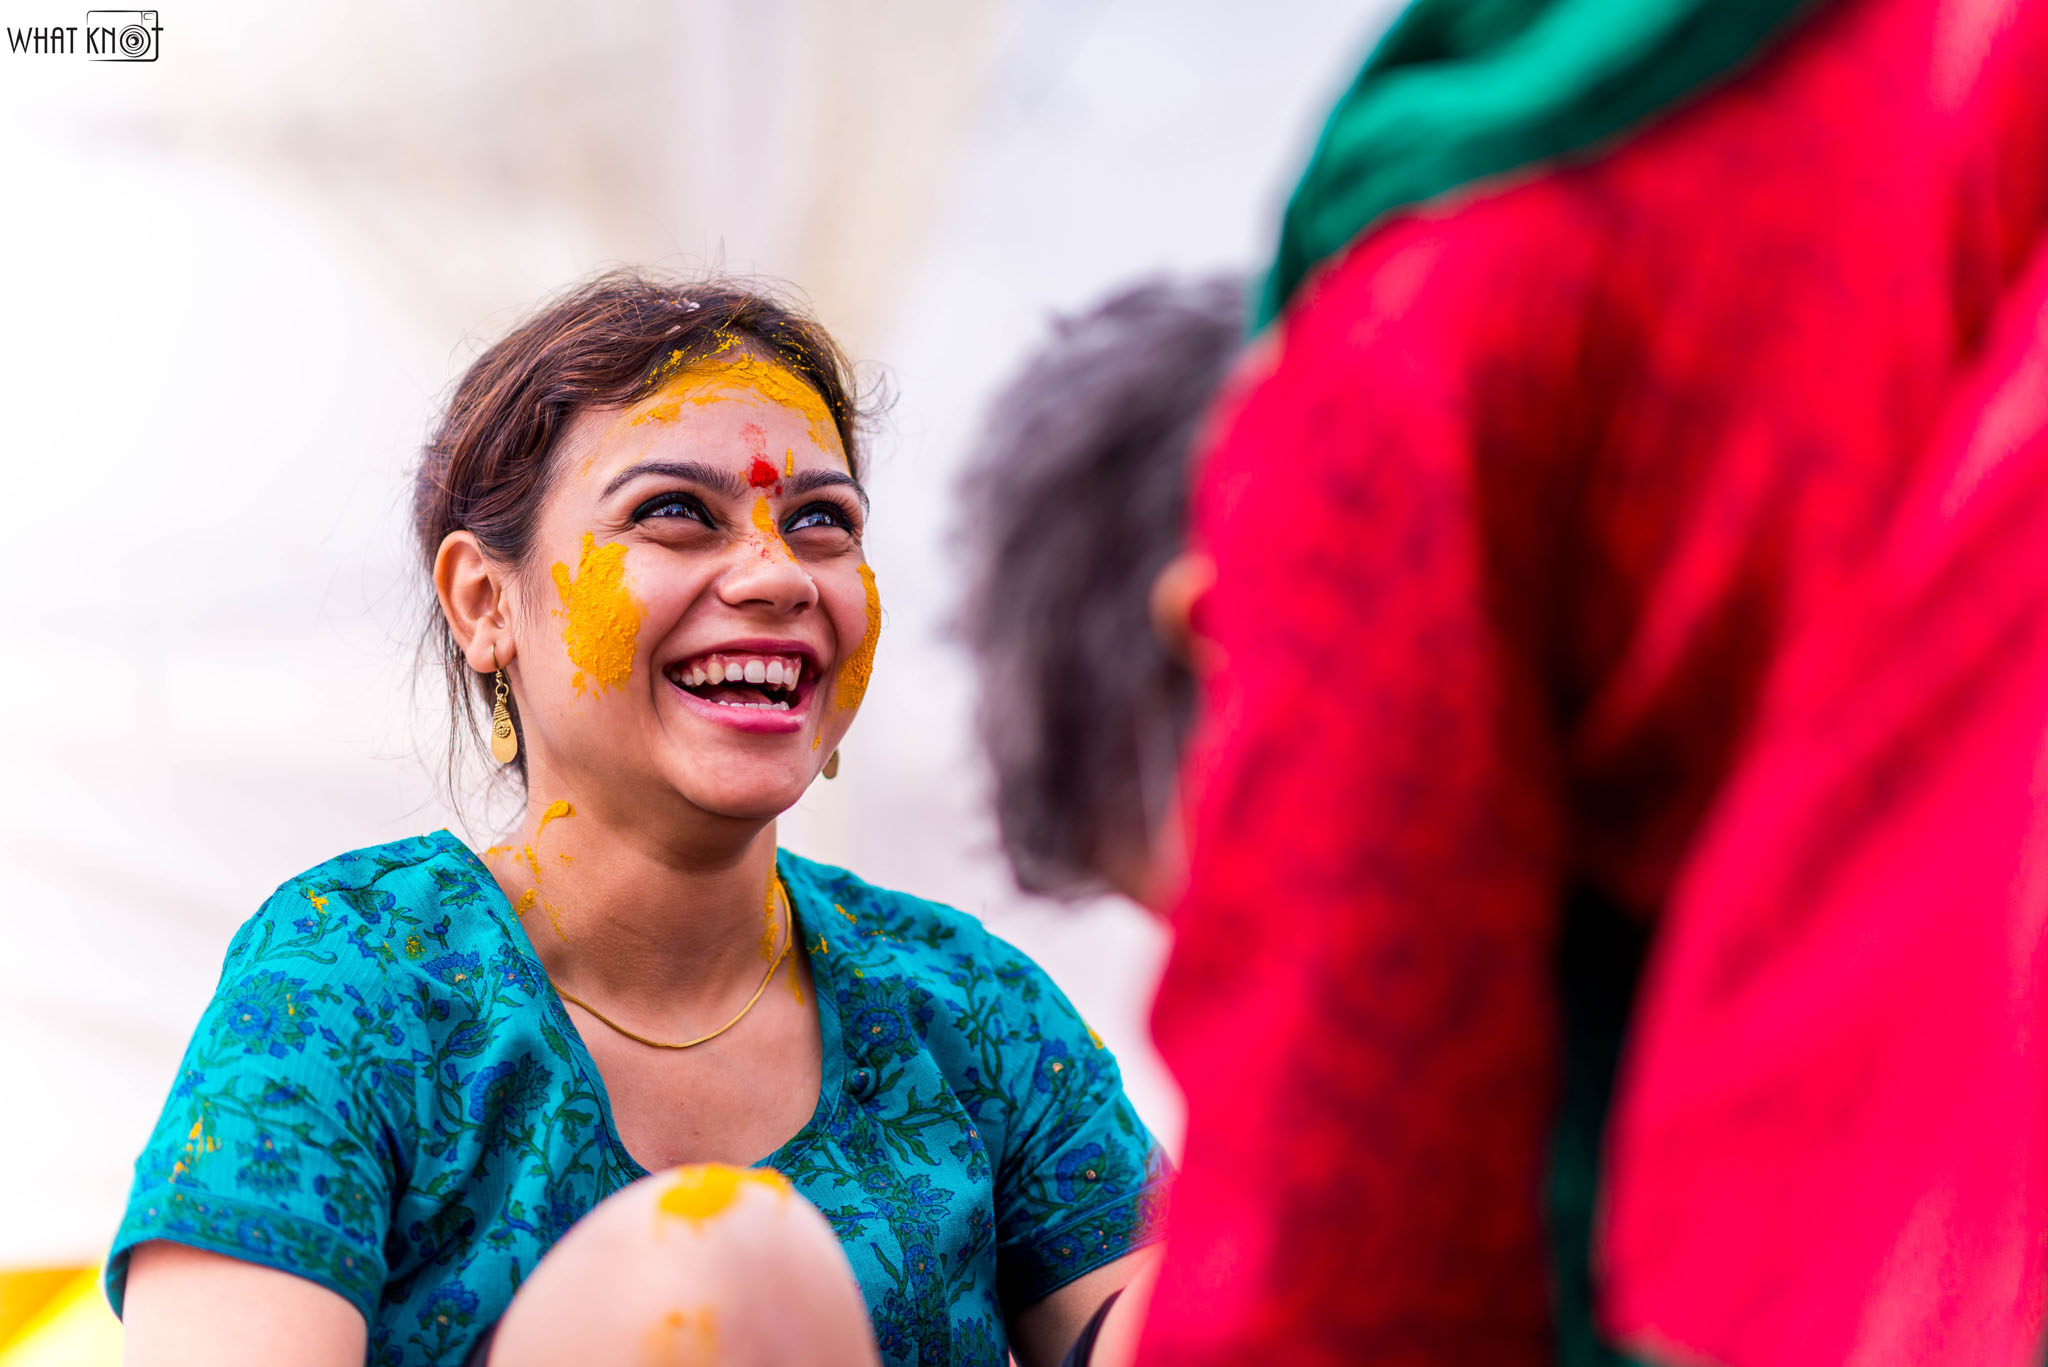 Candid-Wedding-Photography-WhatKnot-Marathi-7